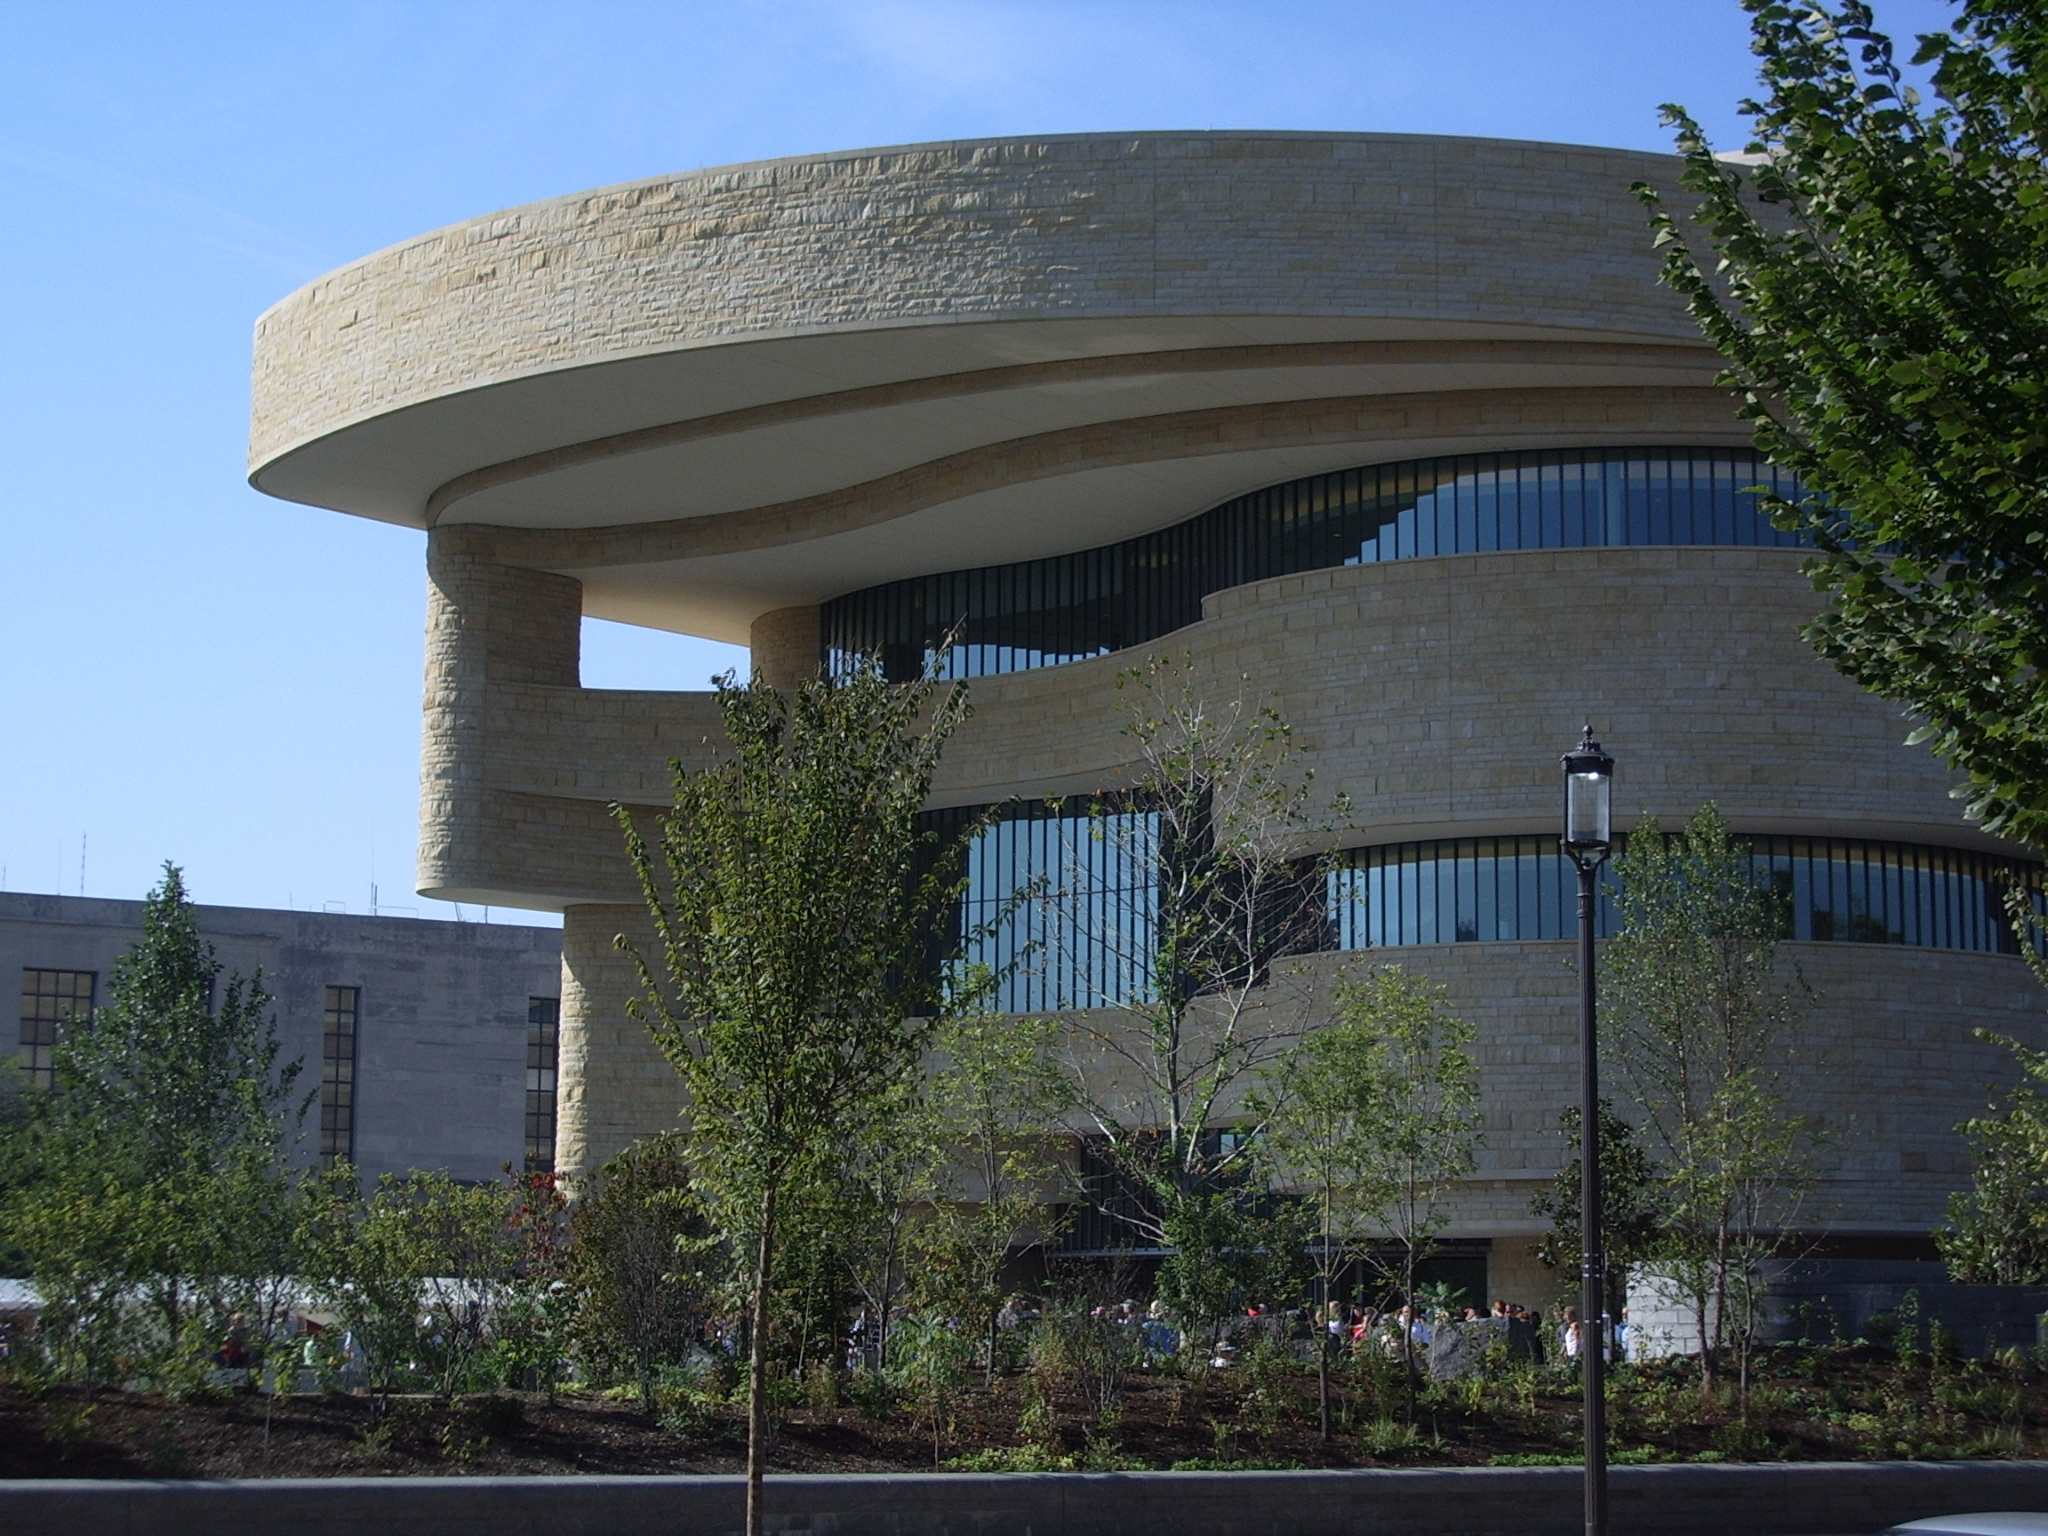 File:National Museum of the American Indian.JPG - Wikipedia, the ...